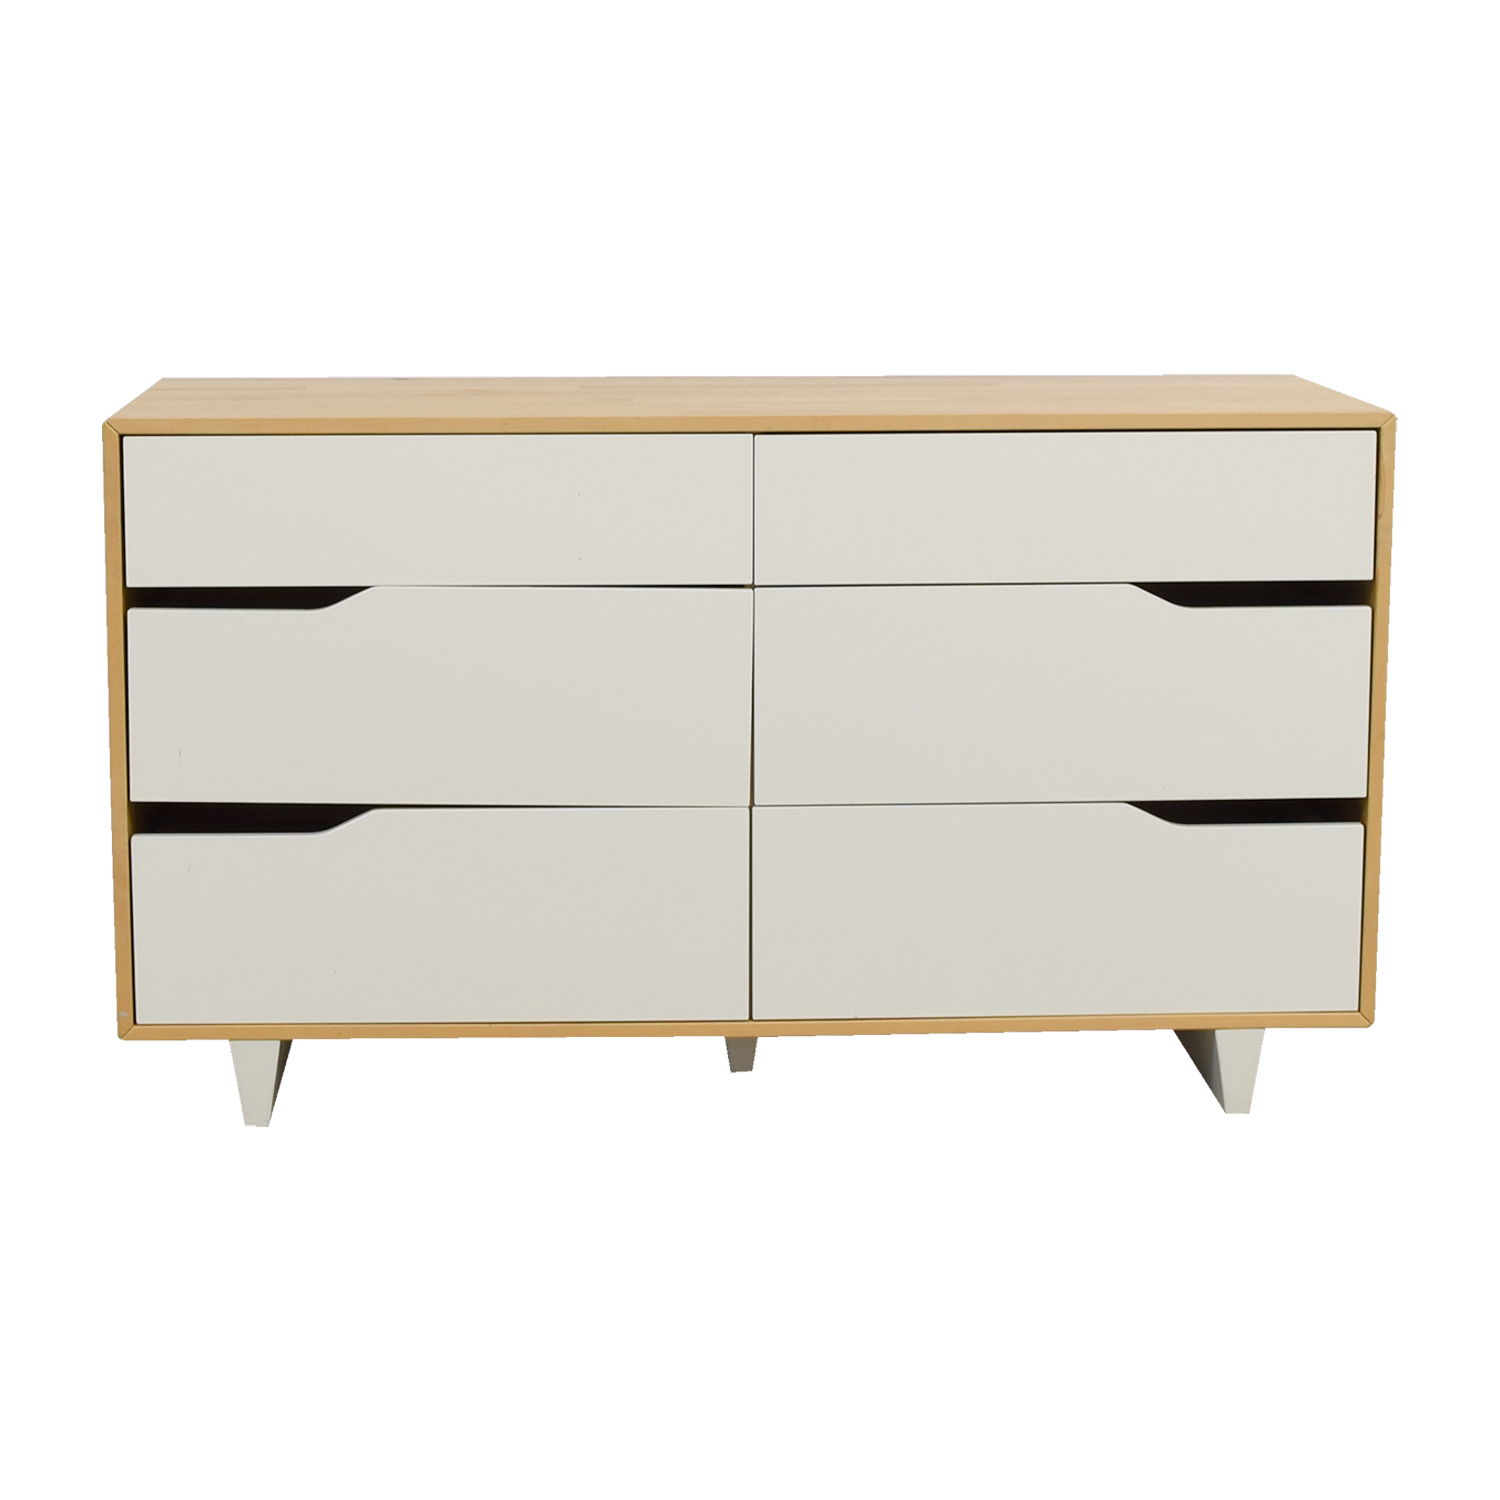 Ikea Askvoll White And Wood Six Drawer Dresser